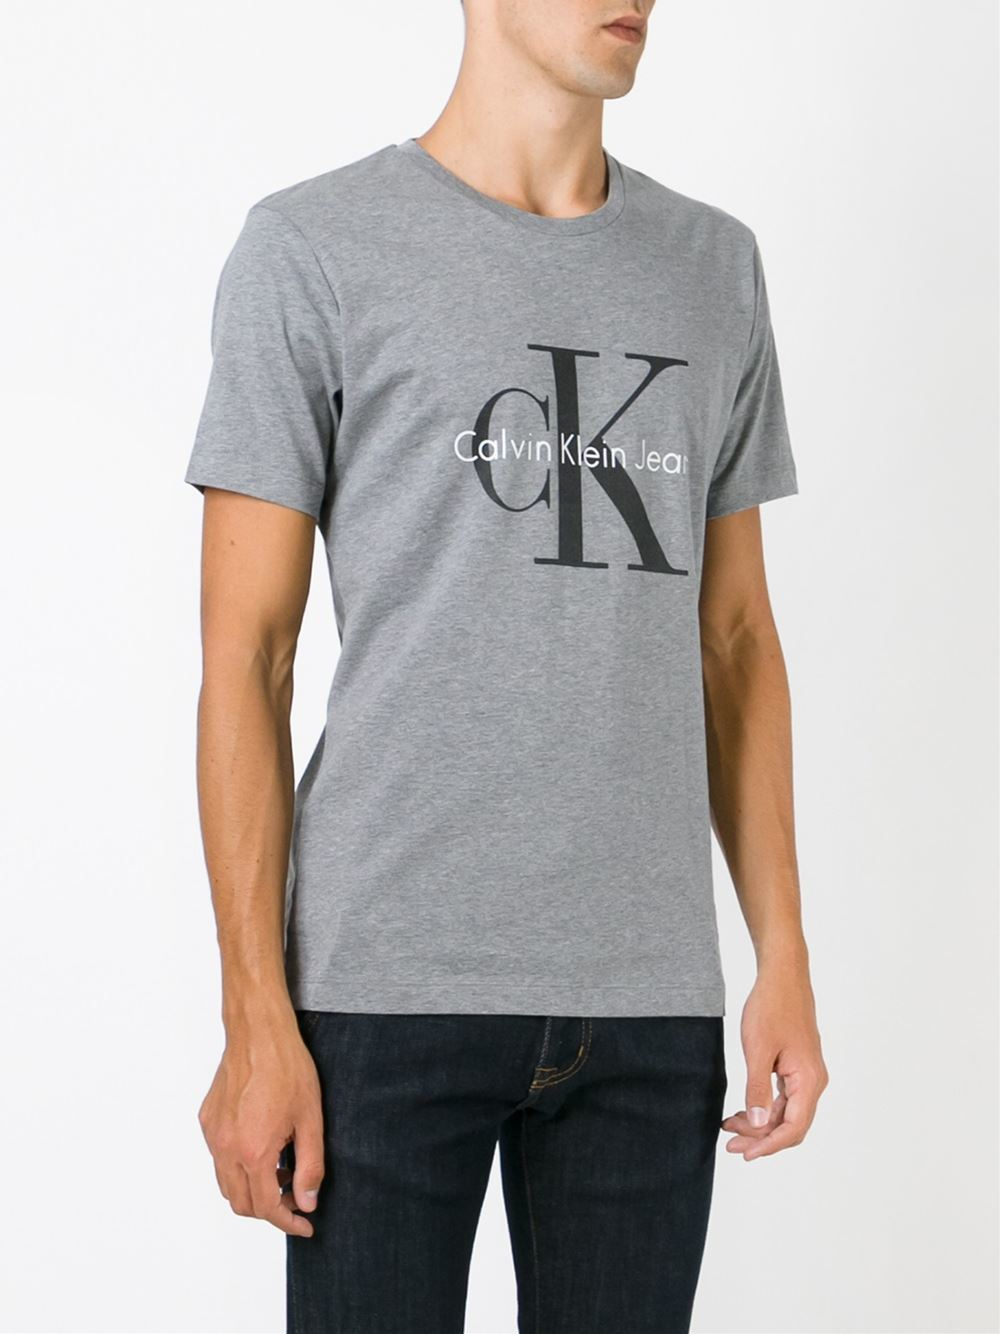 calvin klein jeans logo print t shirt in gray for men grey lyst. Black Bedroom Furniture Sets. Home Design Ideas